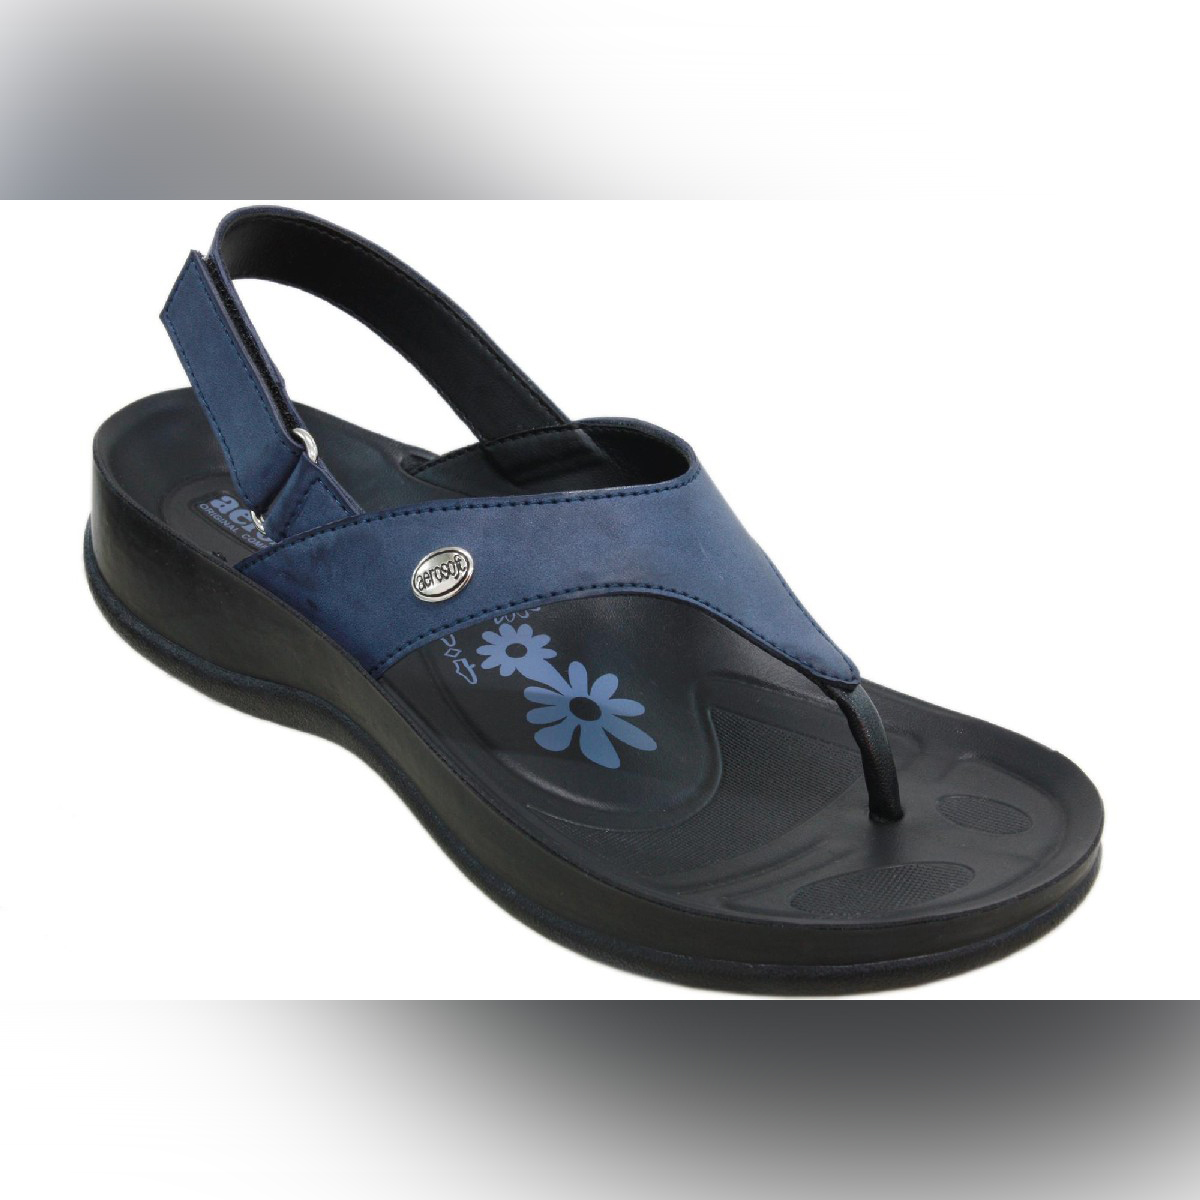 Aerosoft Navy Synthetic Leather Sandals For Women S5914